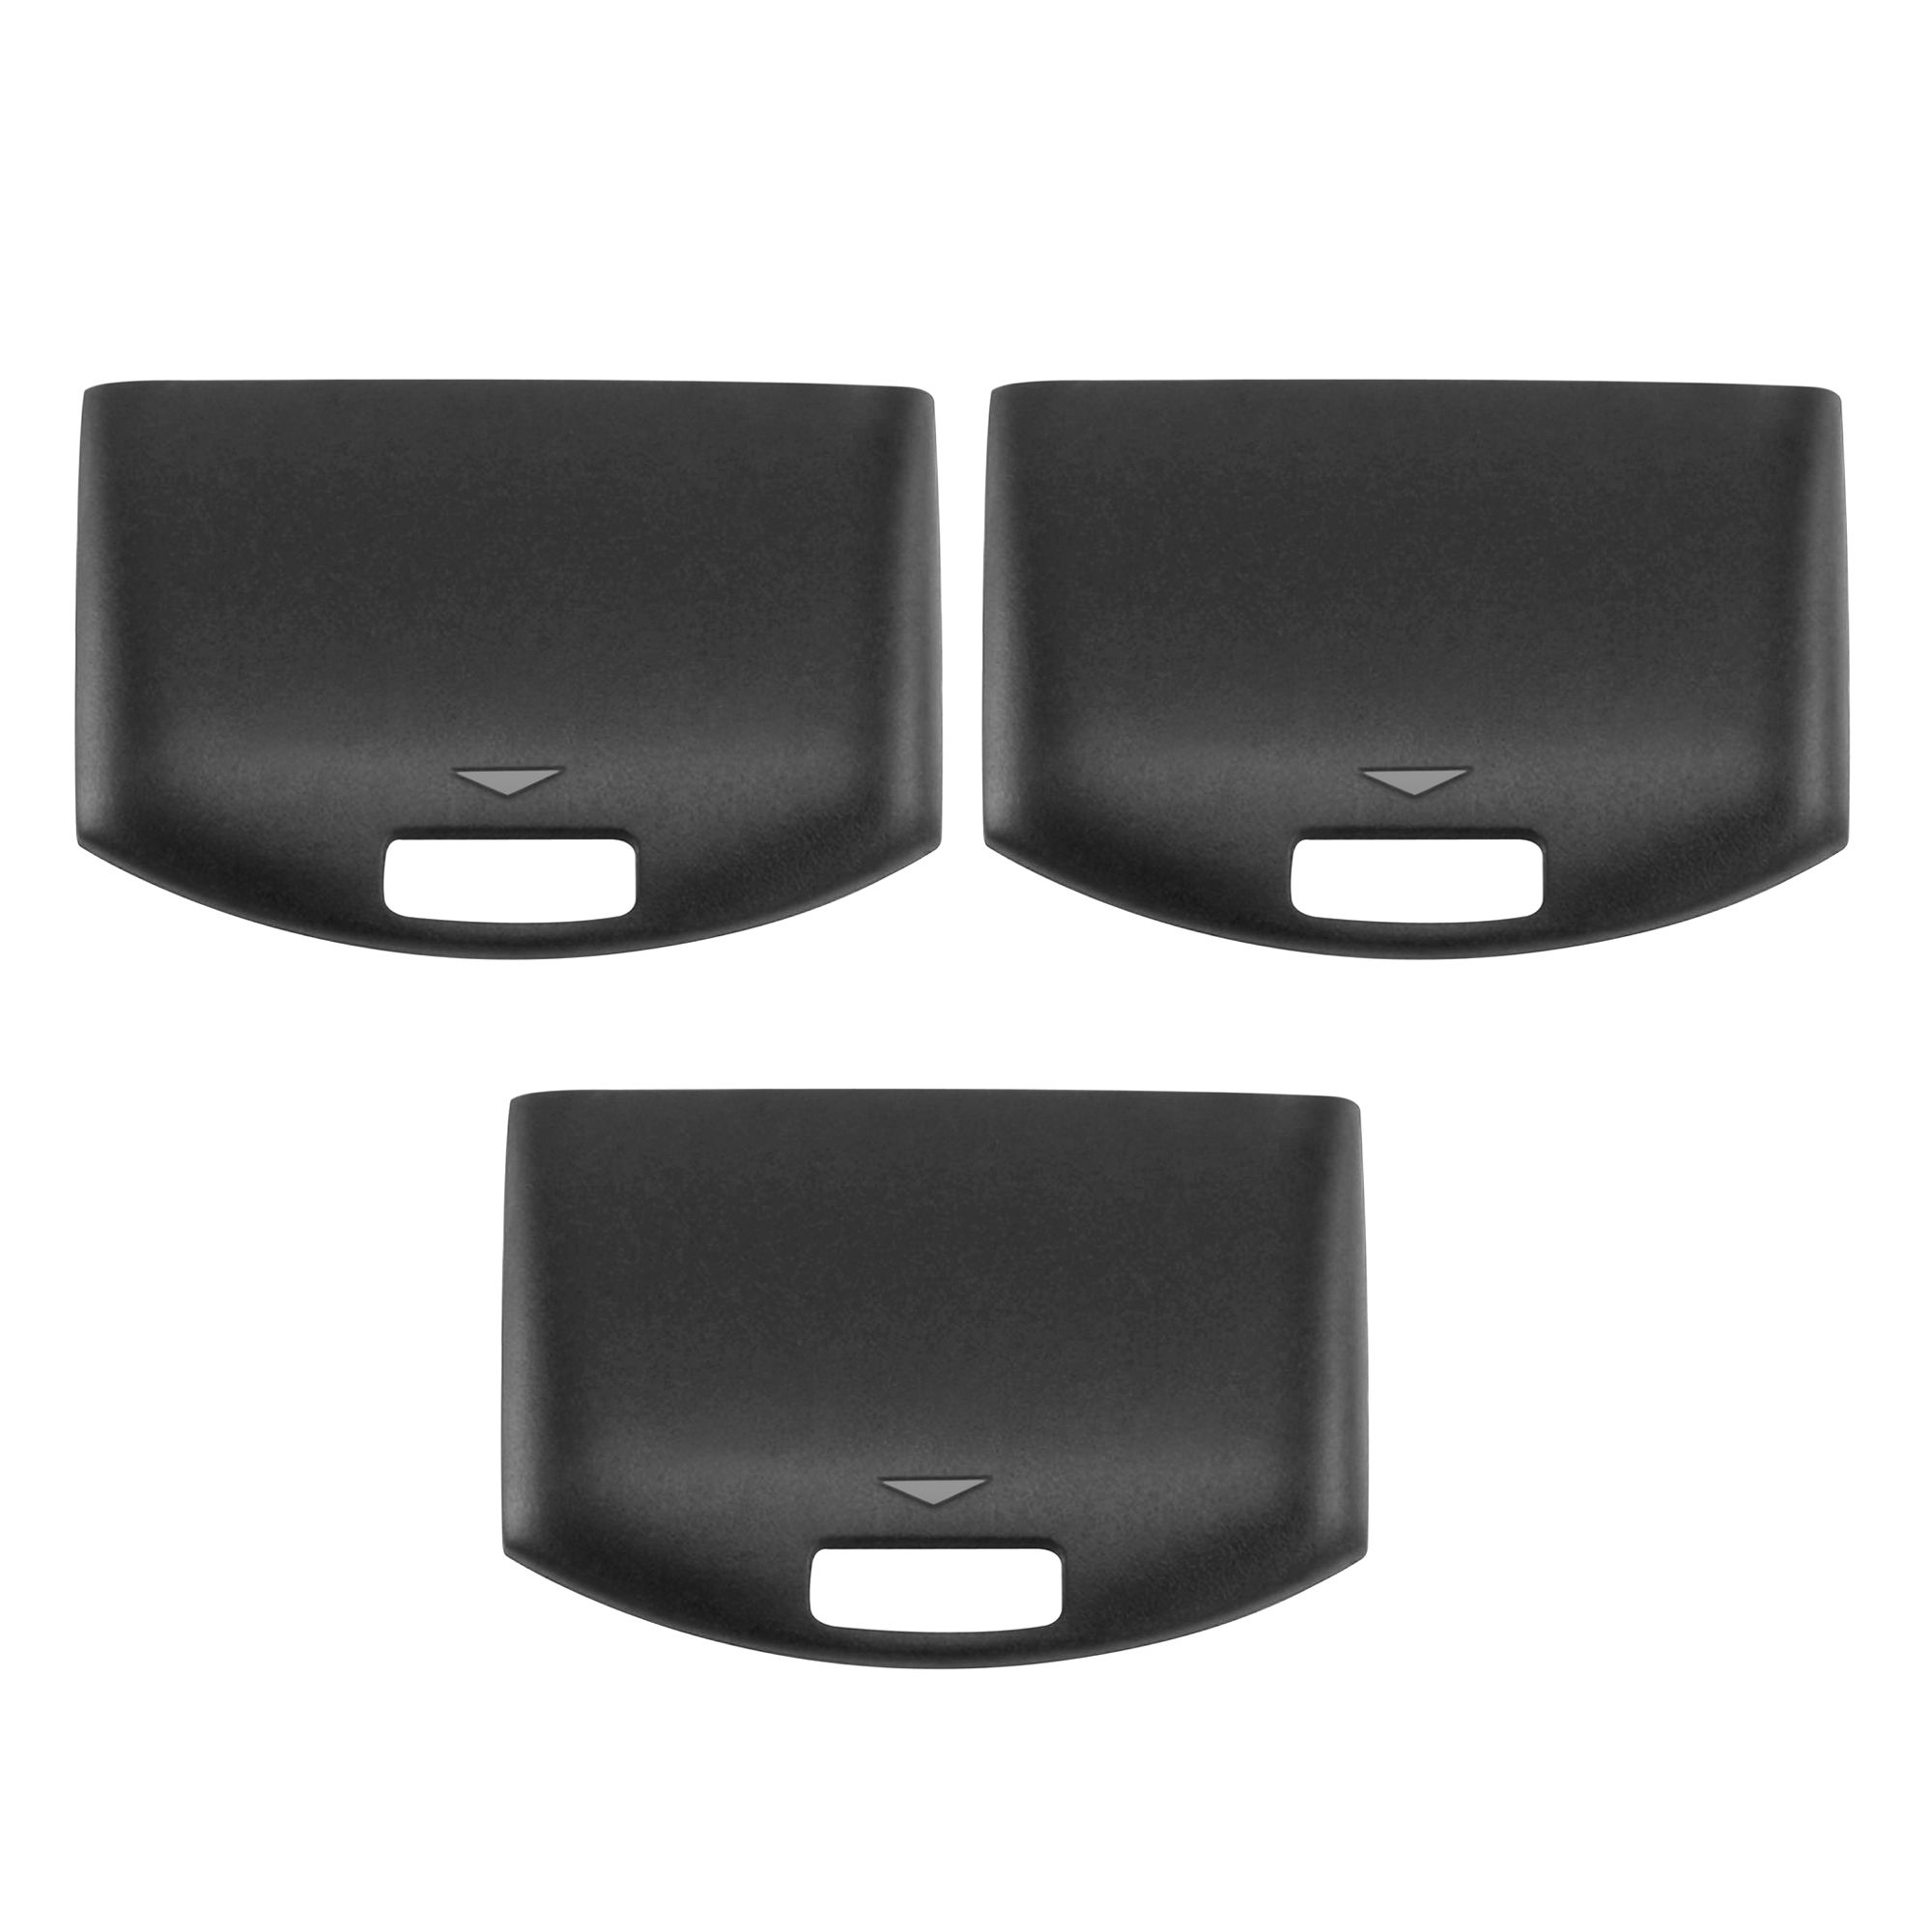 3-Pack Black Battery Door Cover Repair Parts by Insten For PSP 1000